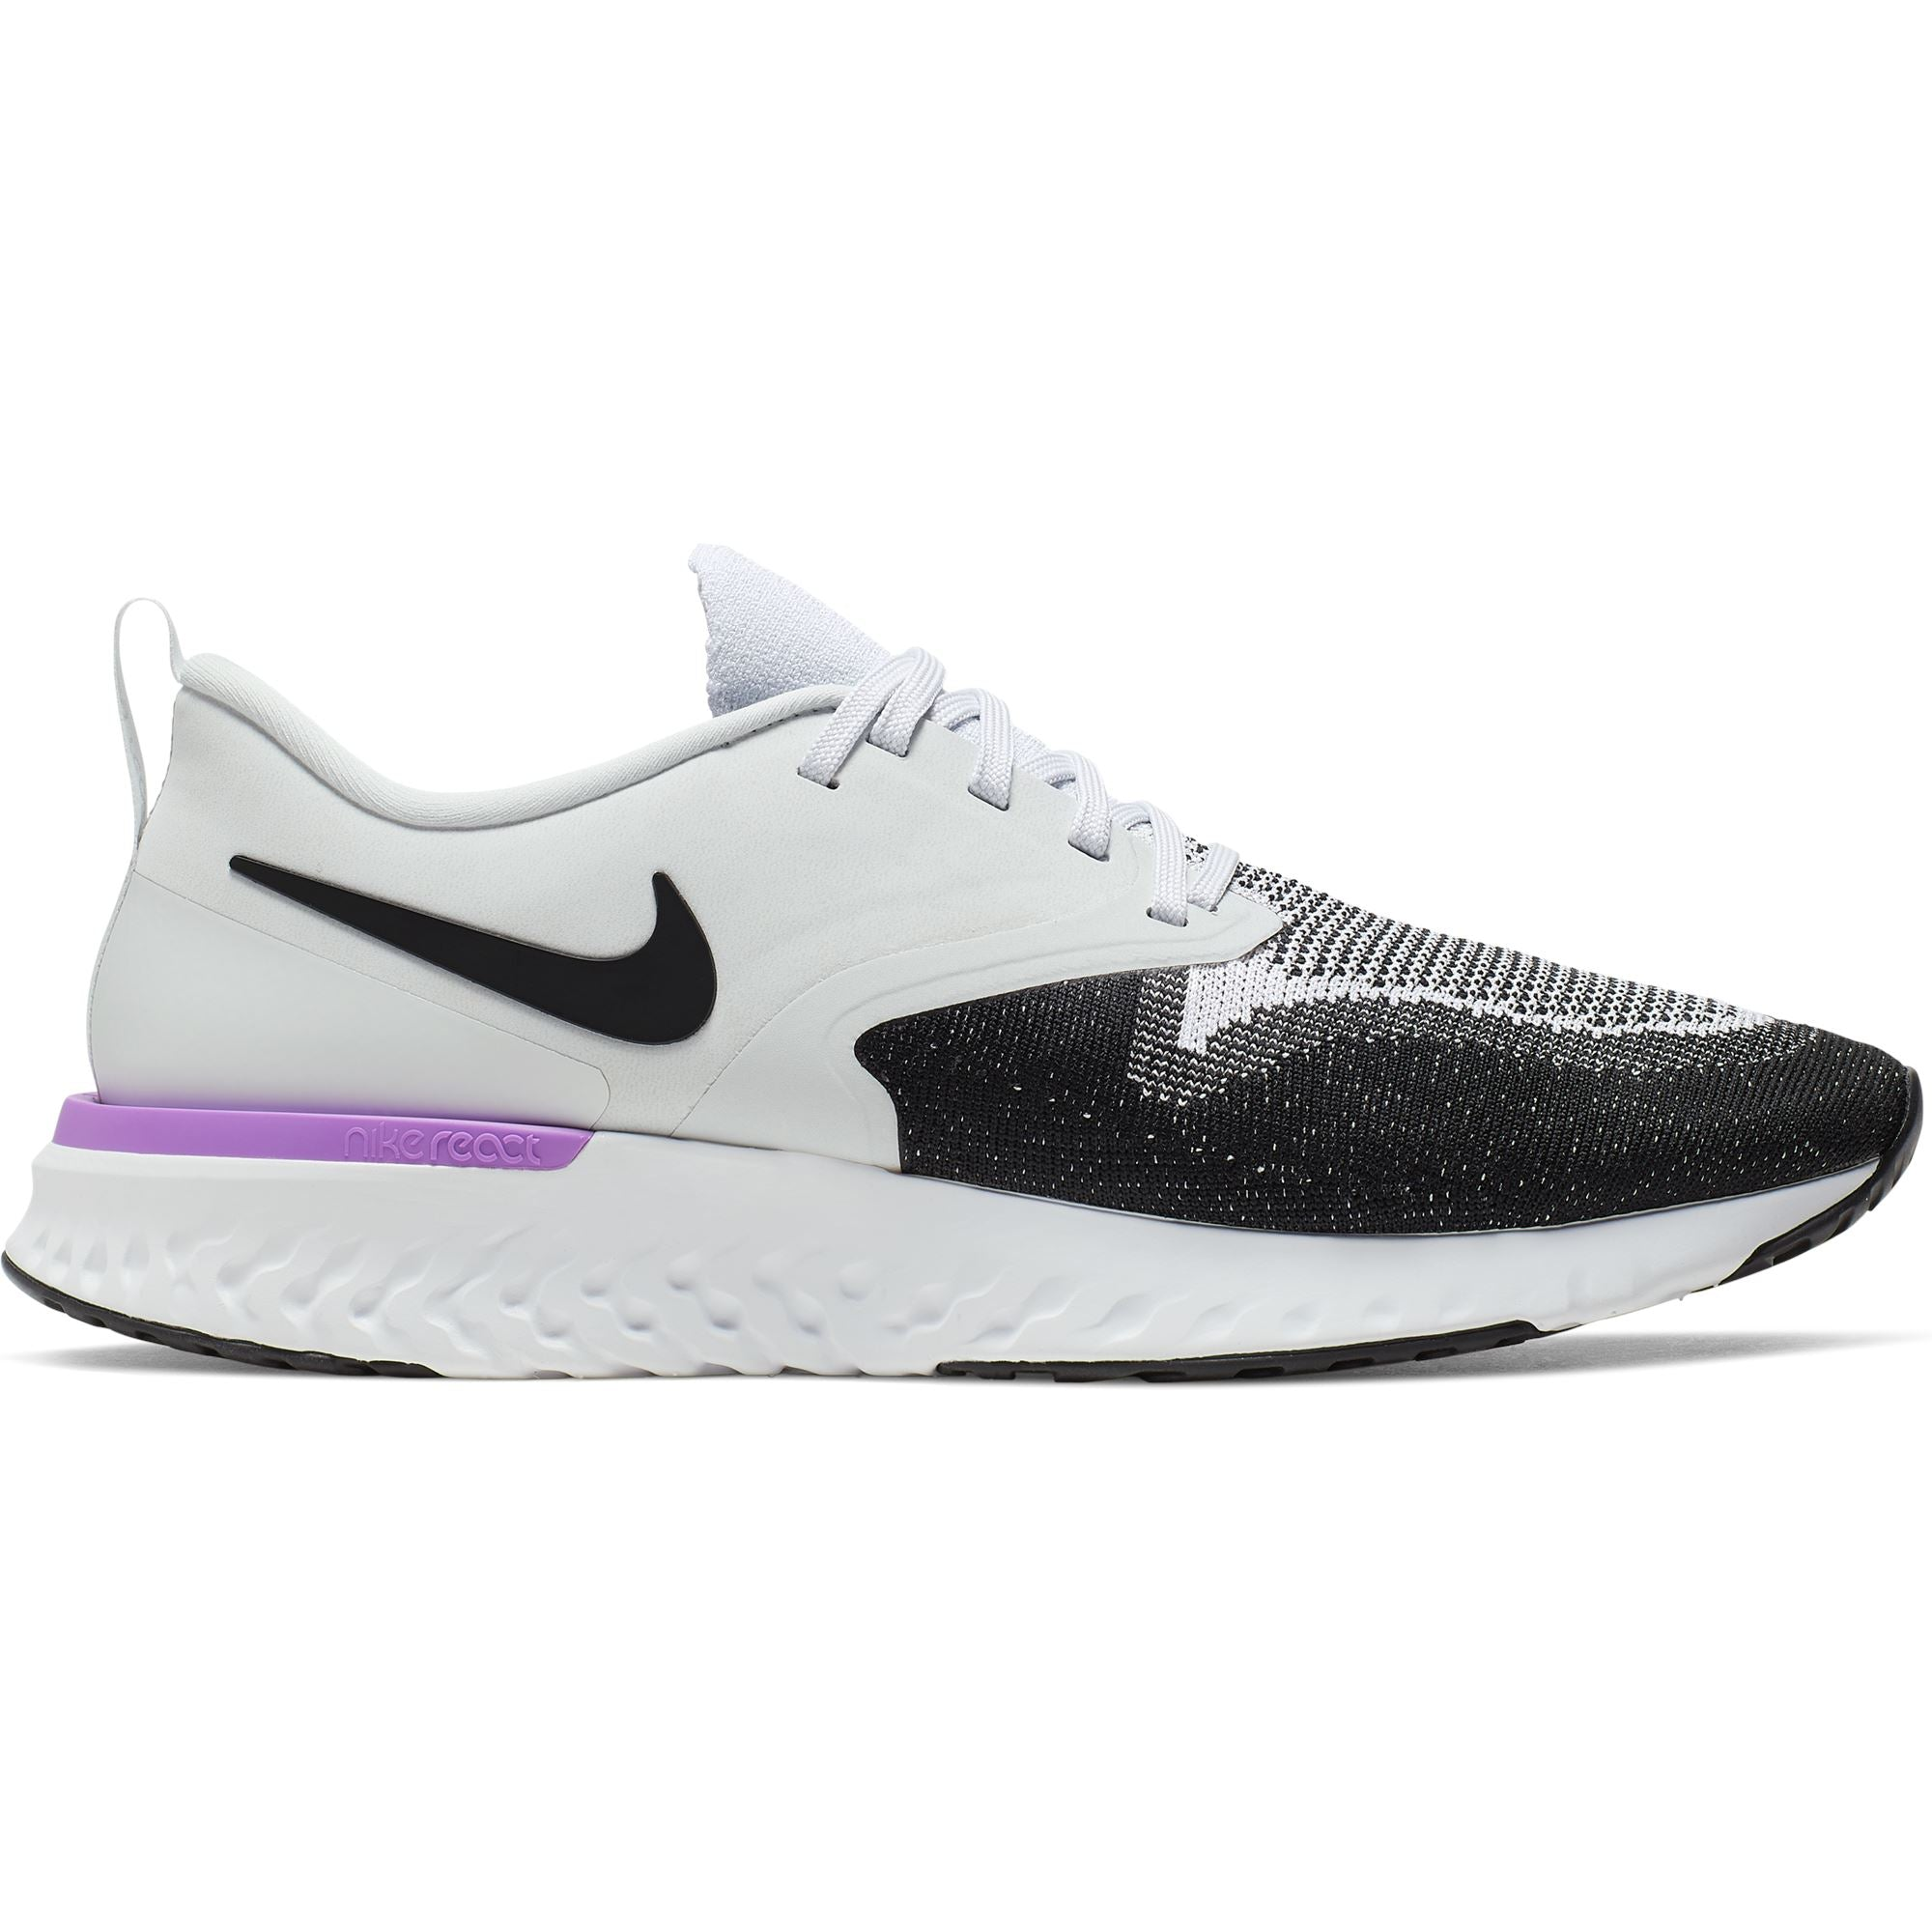 Nike Mens Odyssey React Flyknit 2 - Pure Platinum/Black/WhiteHyperViolet SP-Footwear-Mens Nike